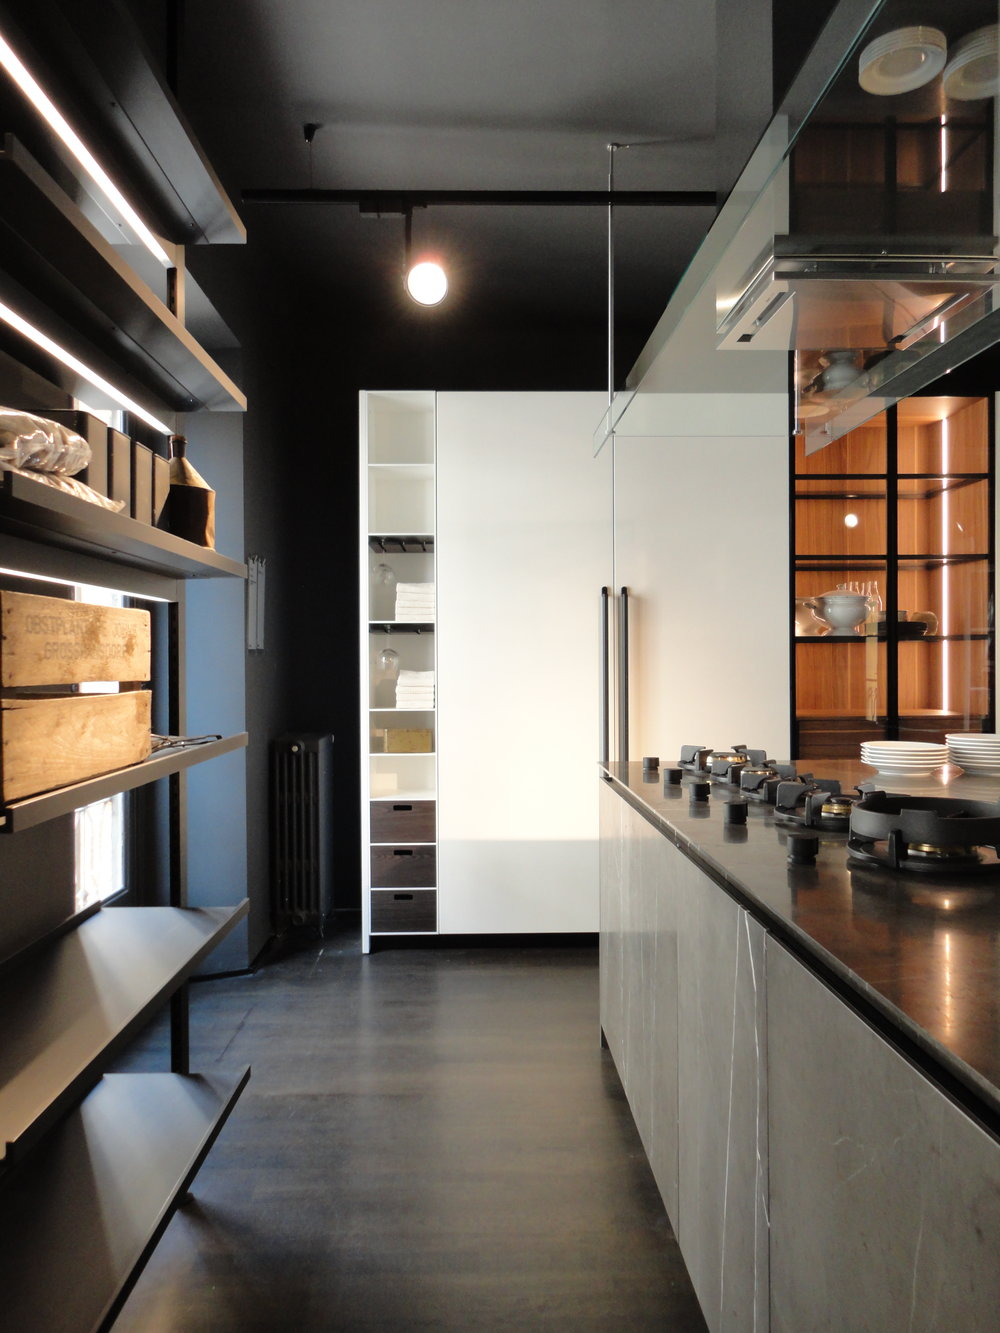 Balanced kitchen storage and display at Boffi